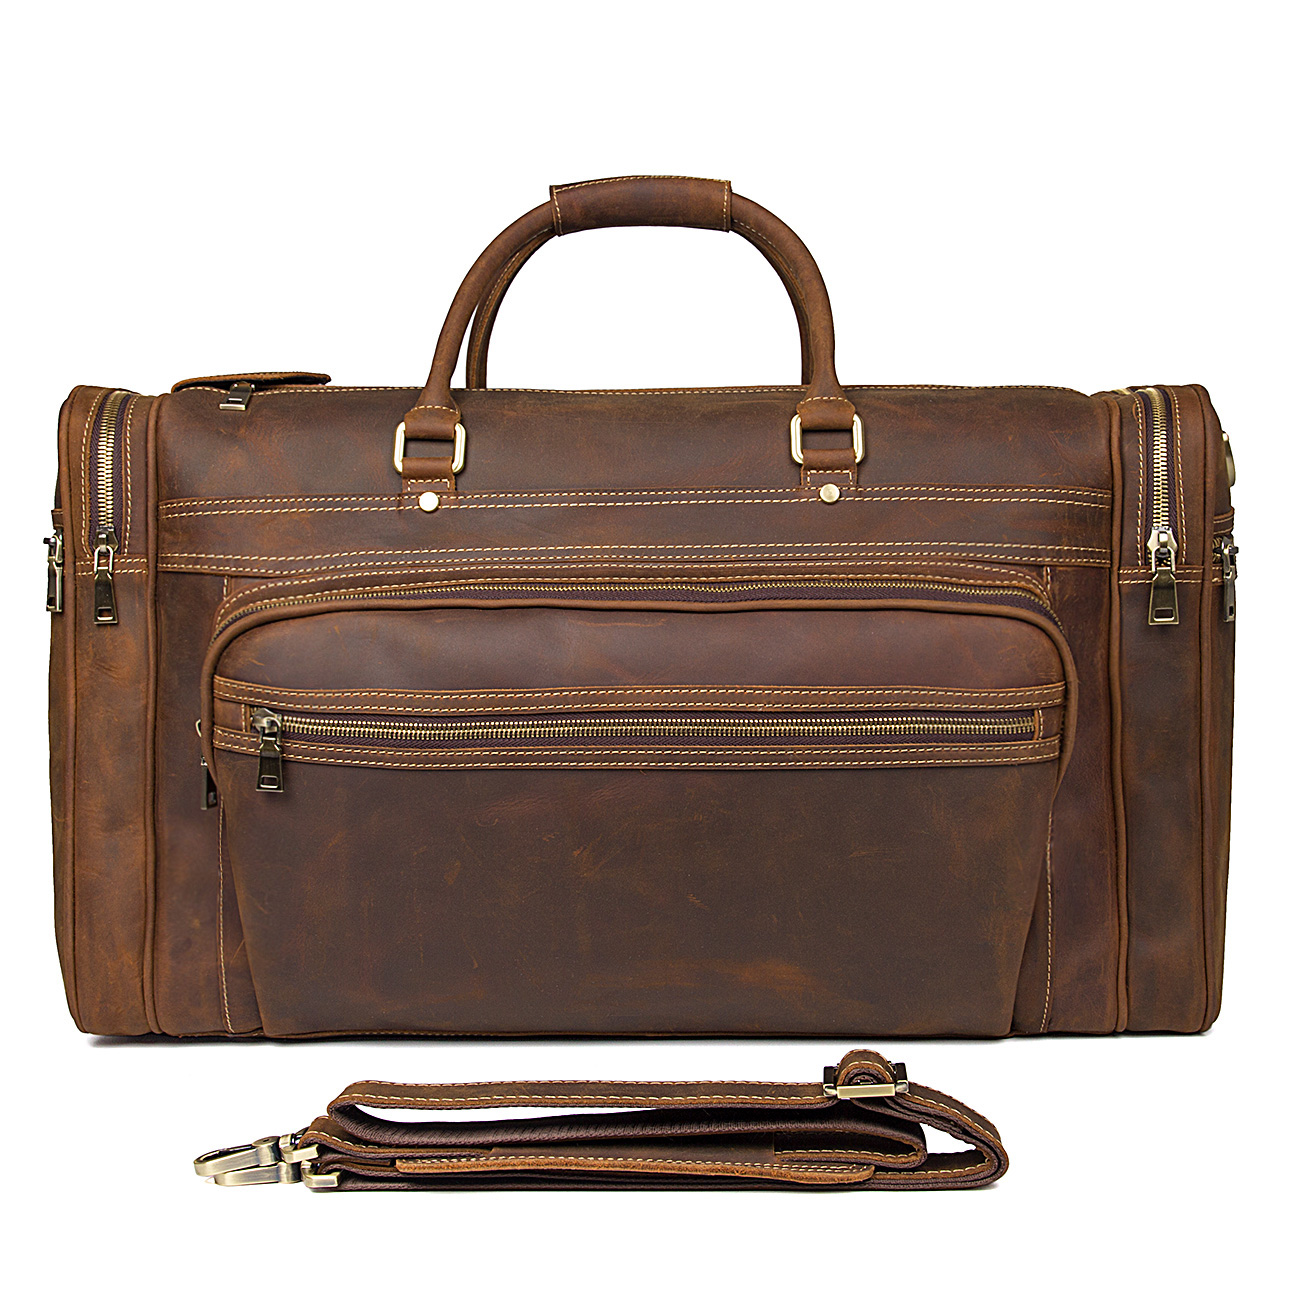 Augus Excellent Vintage Genuine Leather Duffle Bag Large Capacity Casual Tote Bag Classic Business Travel Laptop Bag 7317LR in Top Handle Bags from Luggage Bags